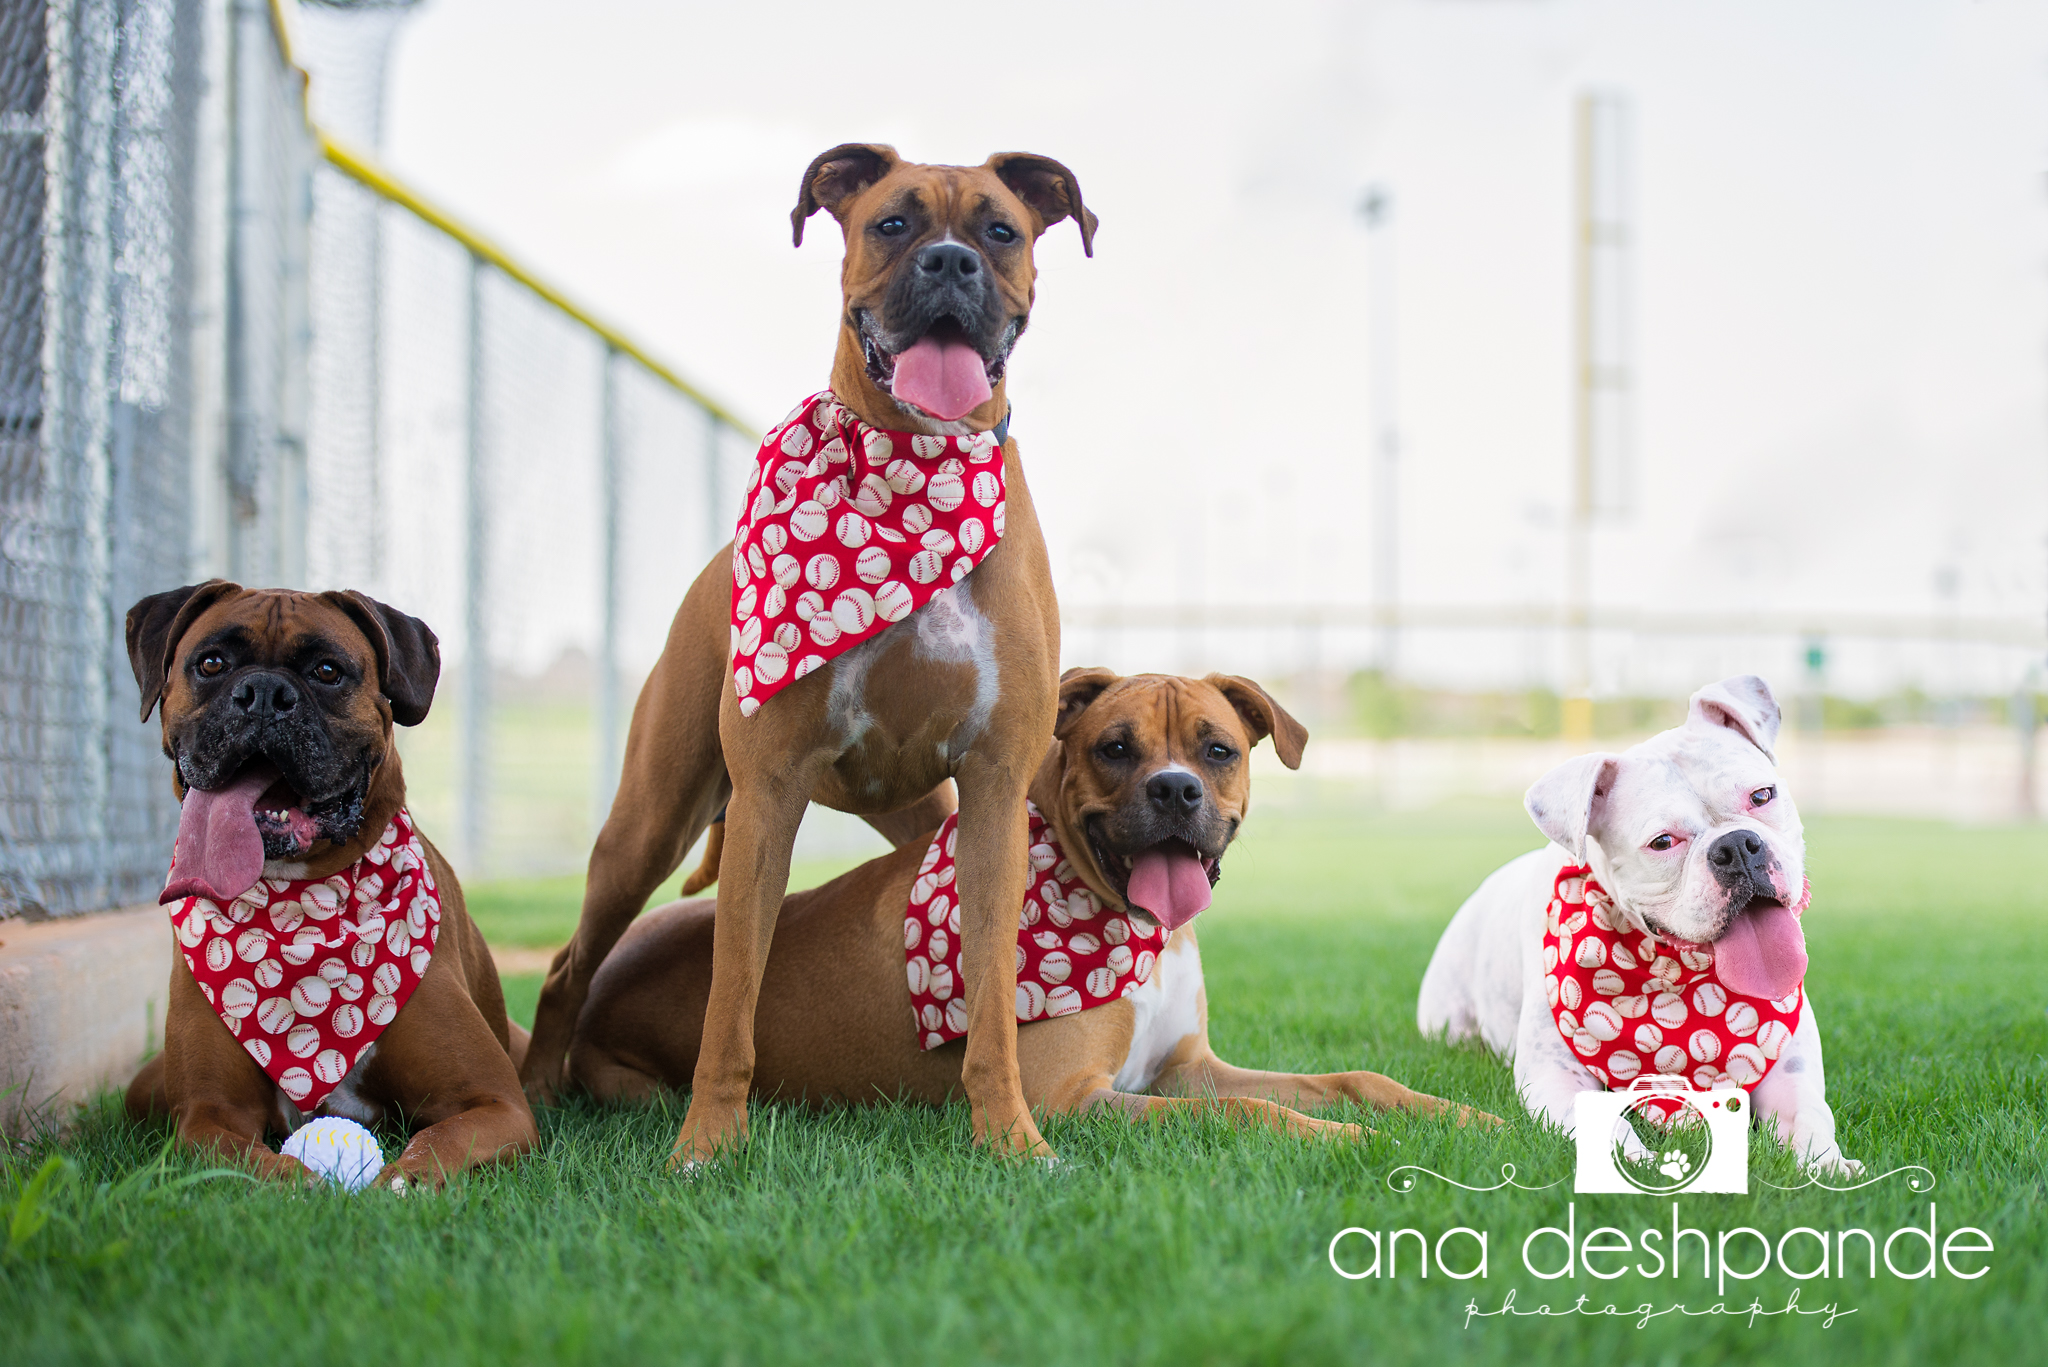 Windsor, Dazzle, Ro and Colbie wanted a baseball themed photograph and that's what they got! They will be playing ball all through the month of June.